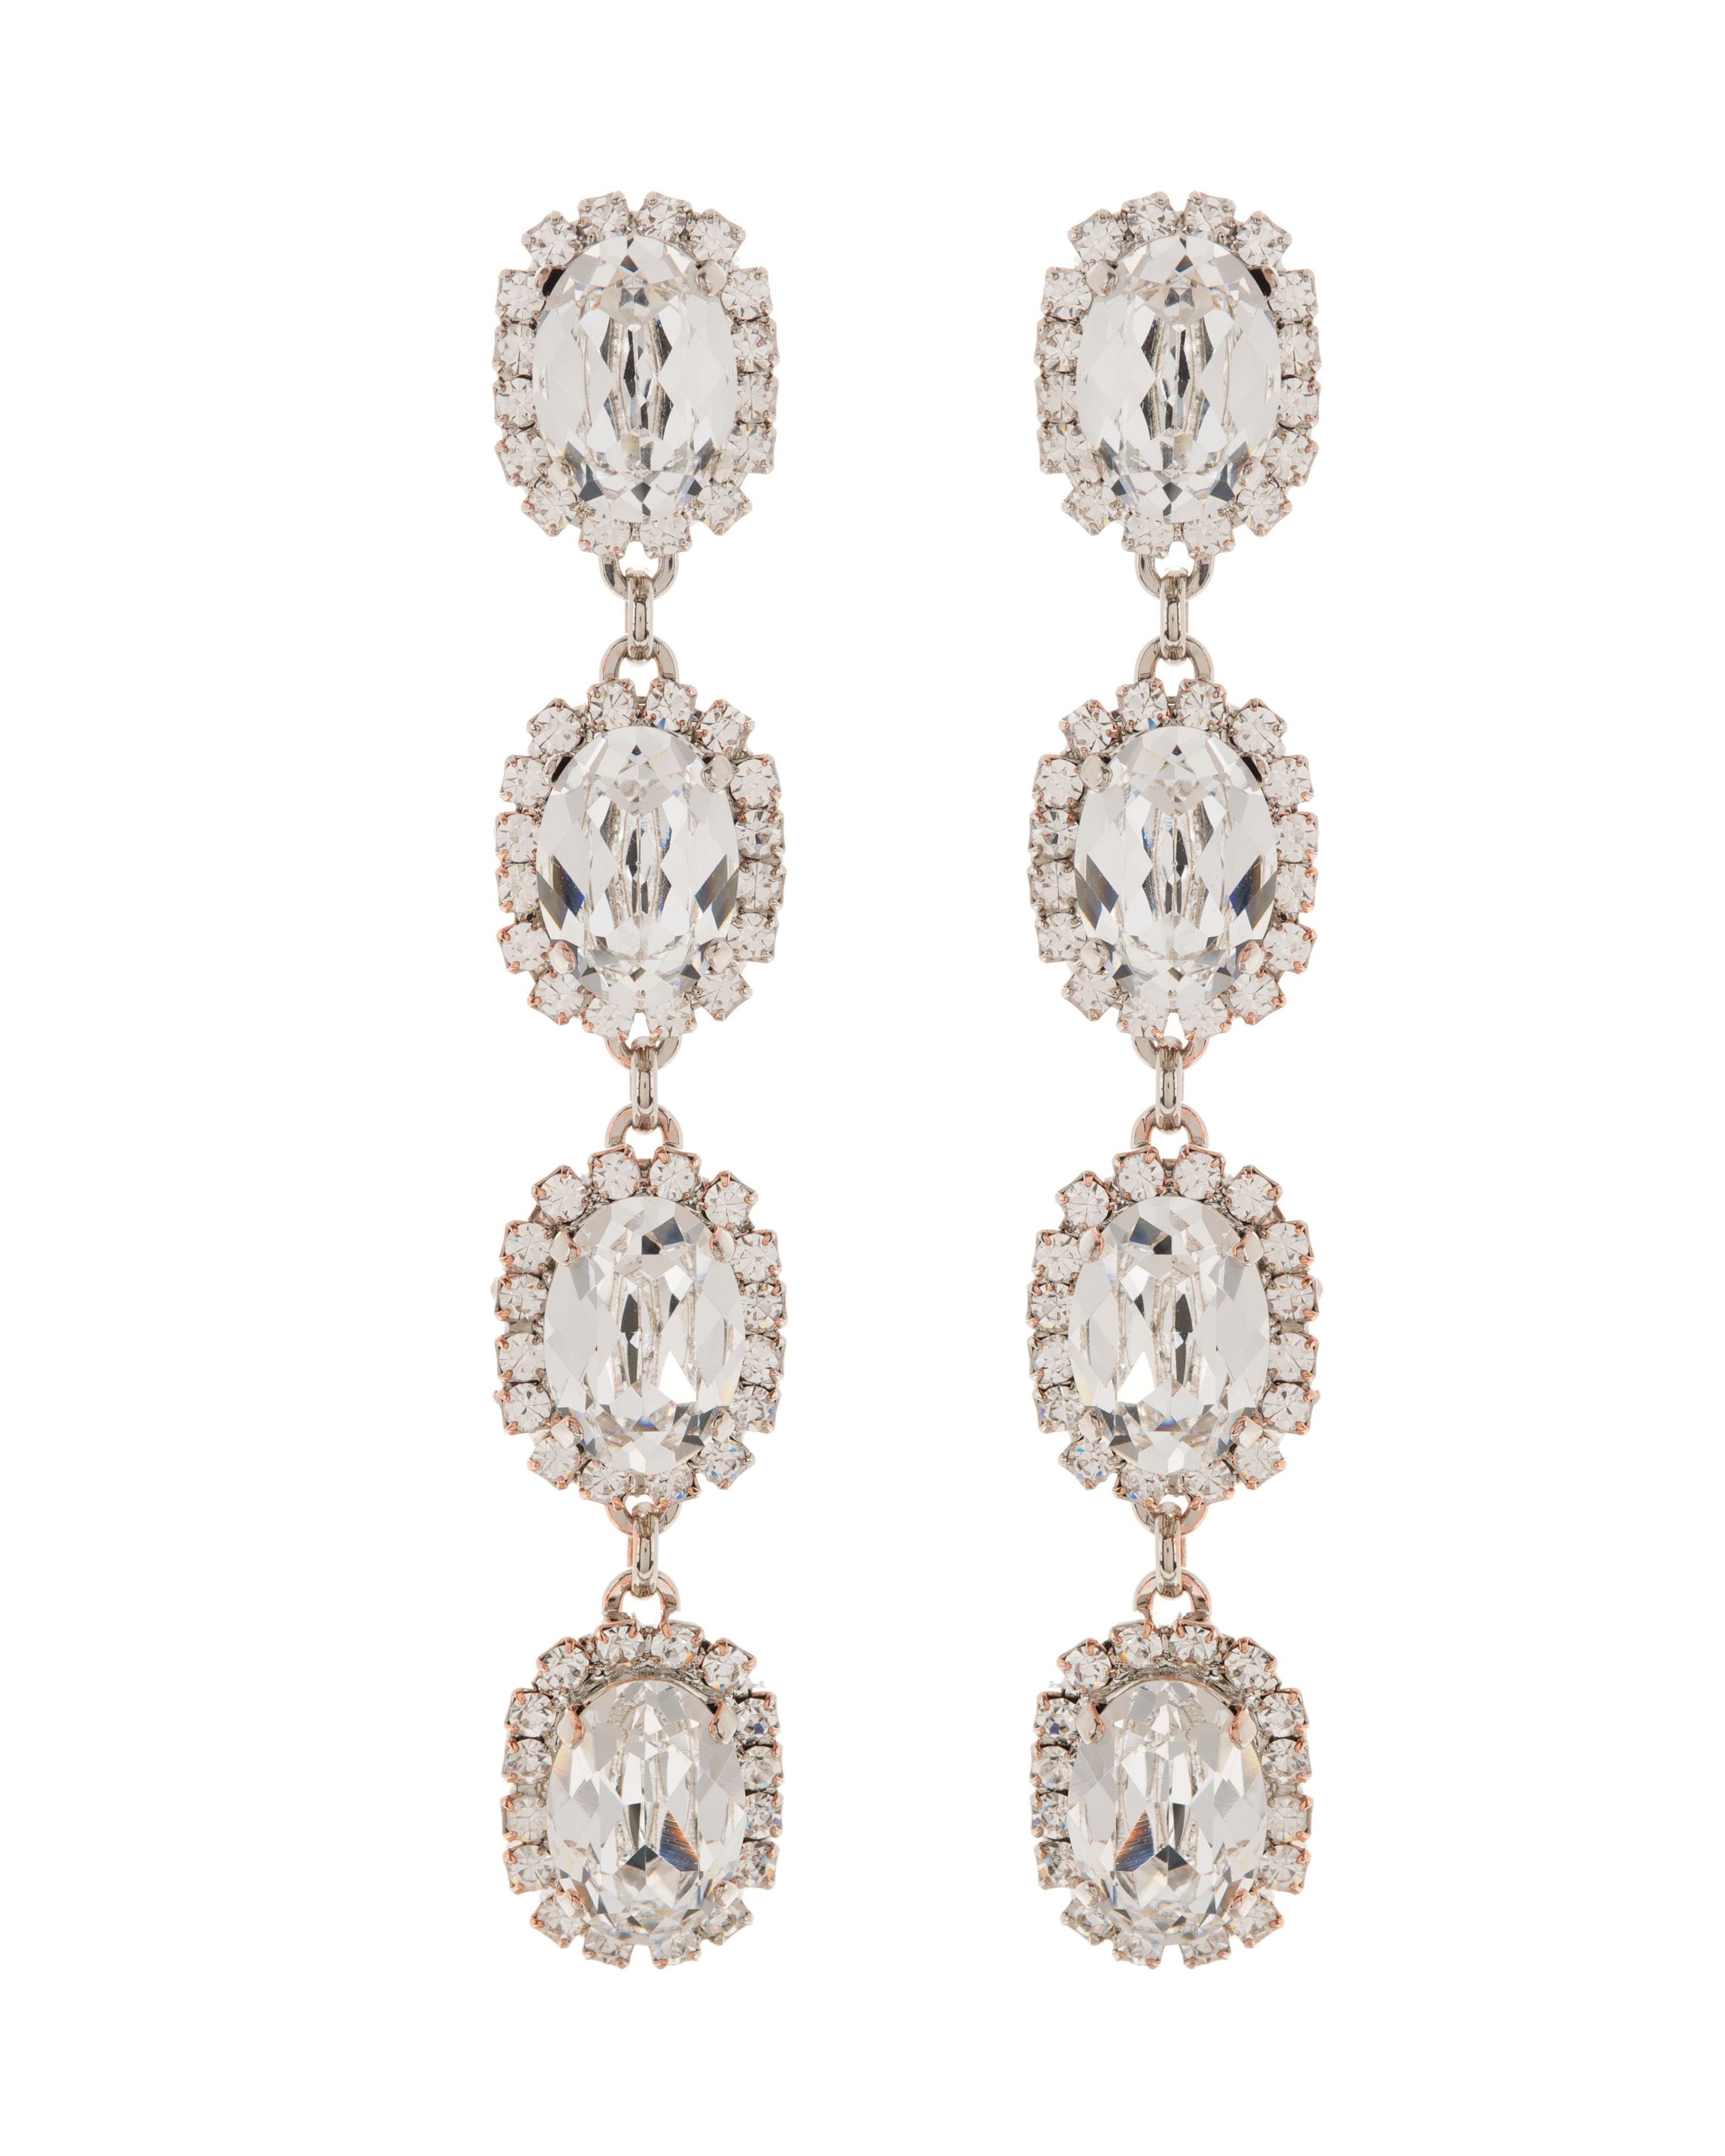 Bridal crystal oval stoned drop earrings